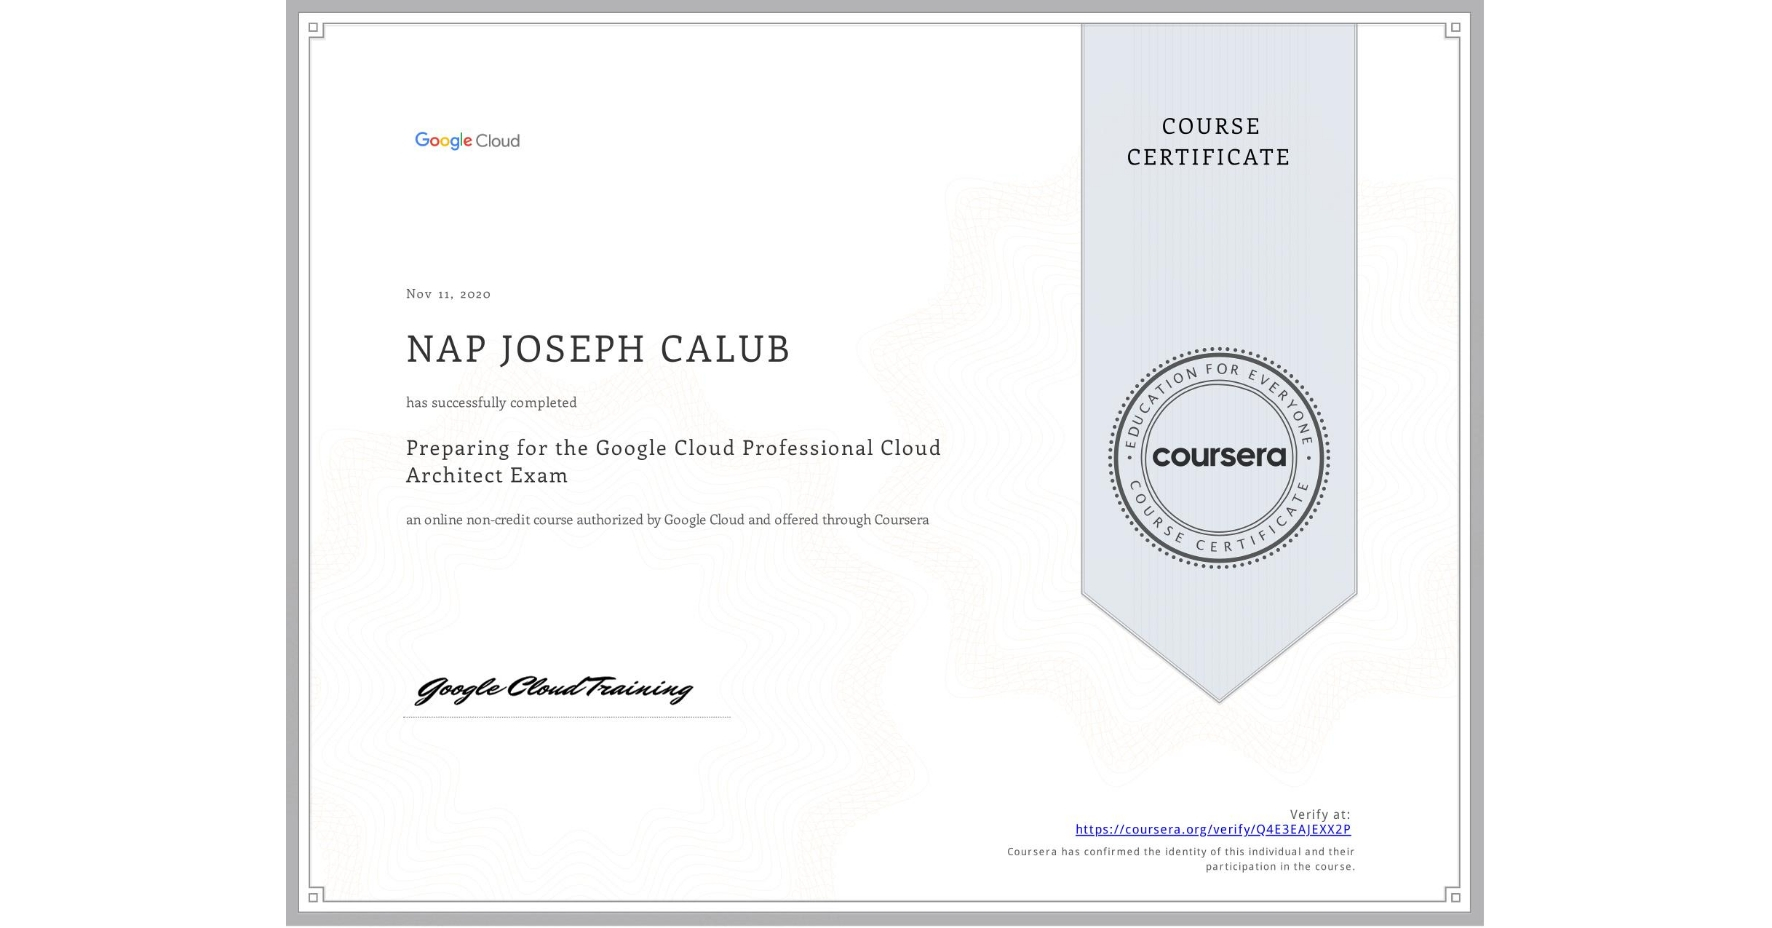 View certificate for NAP JOSEPH  CALUB, Preparing for the Google Cloud Professional Cloud Architect Exam, an online non-credit course authorized by Google Cloud and offered through Coursera